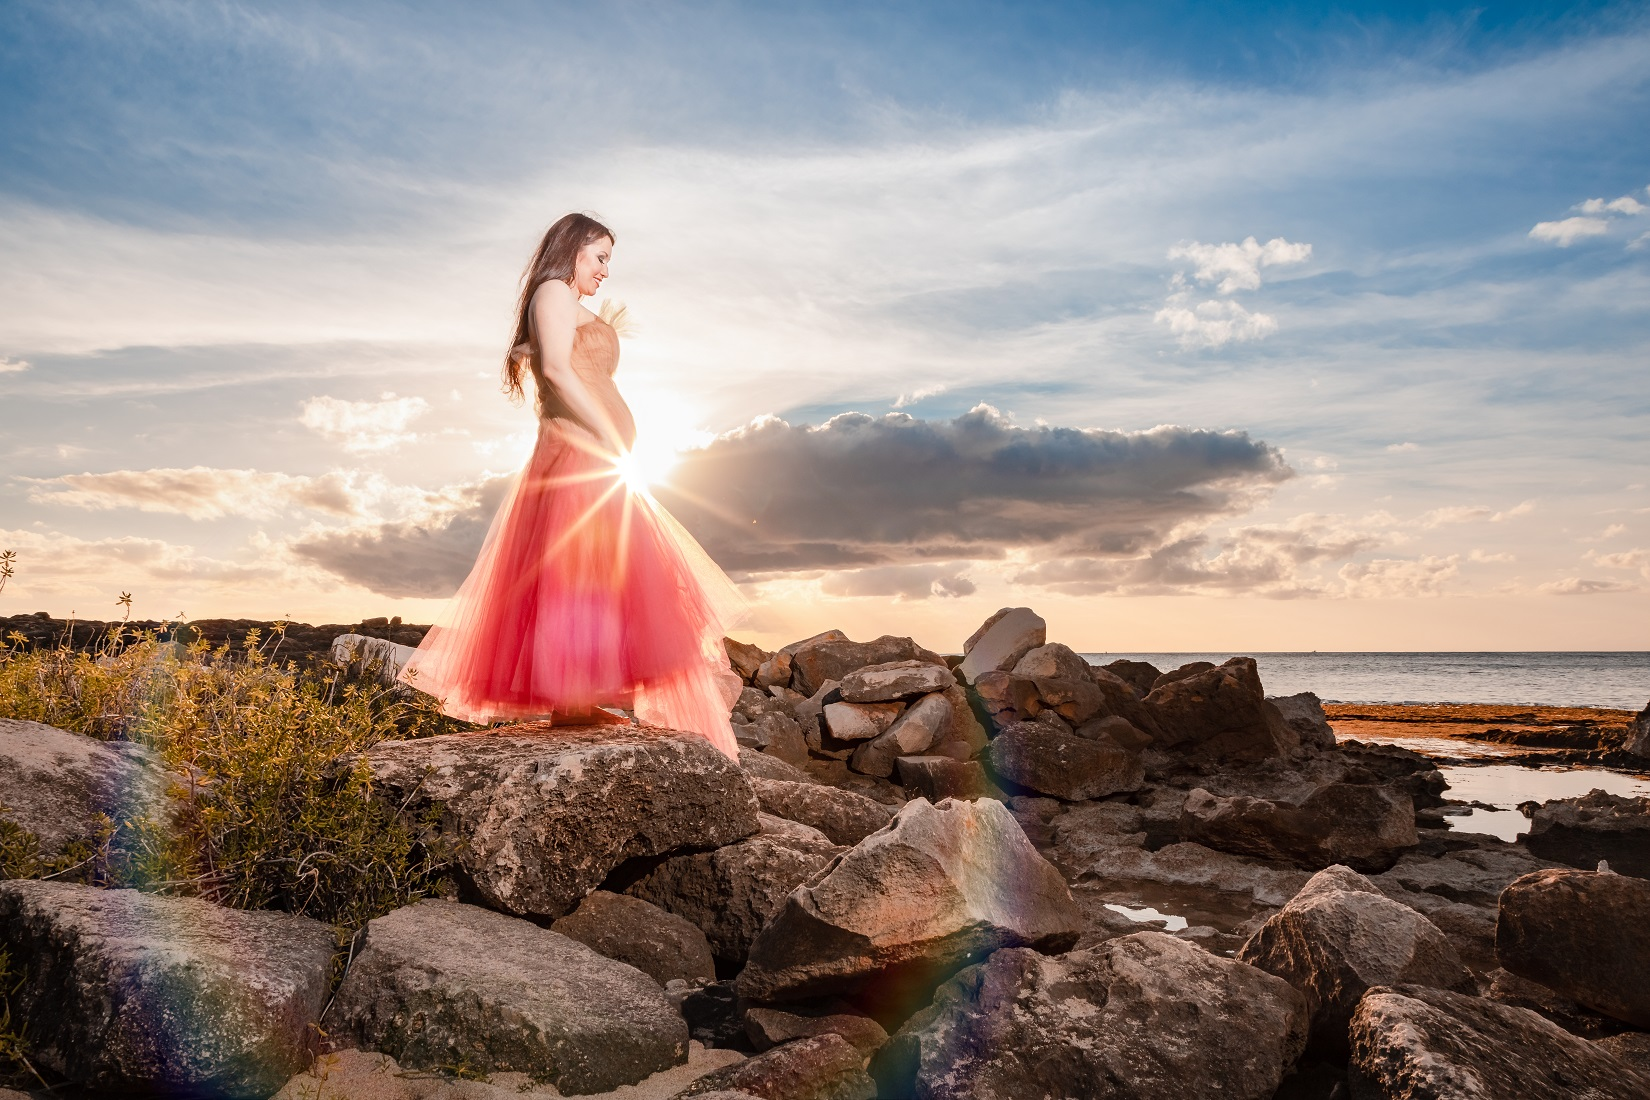 maui hawaii sunset maternity baby pregnant photography sun flare